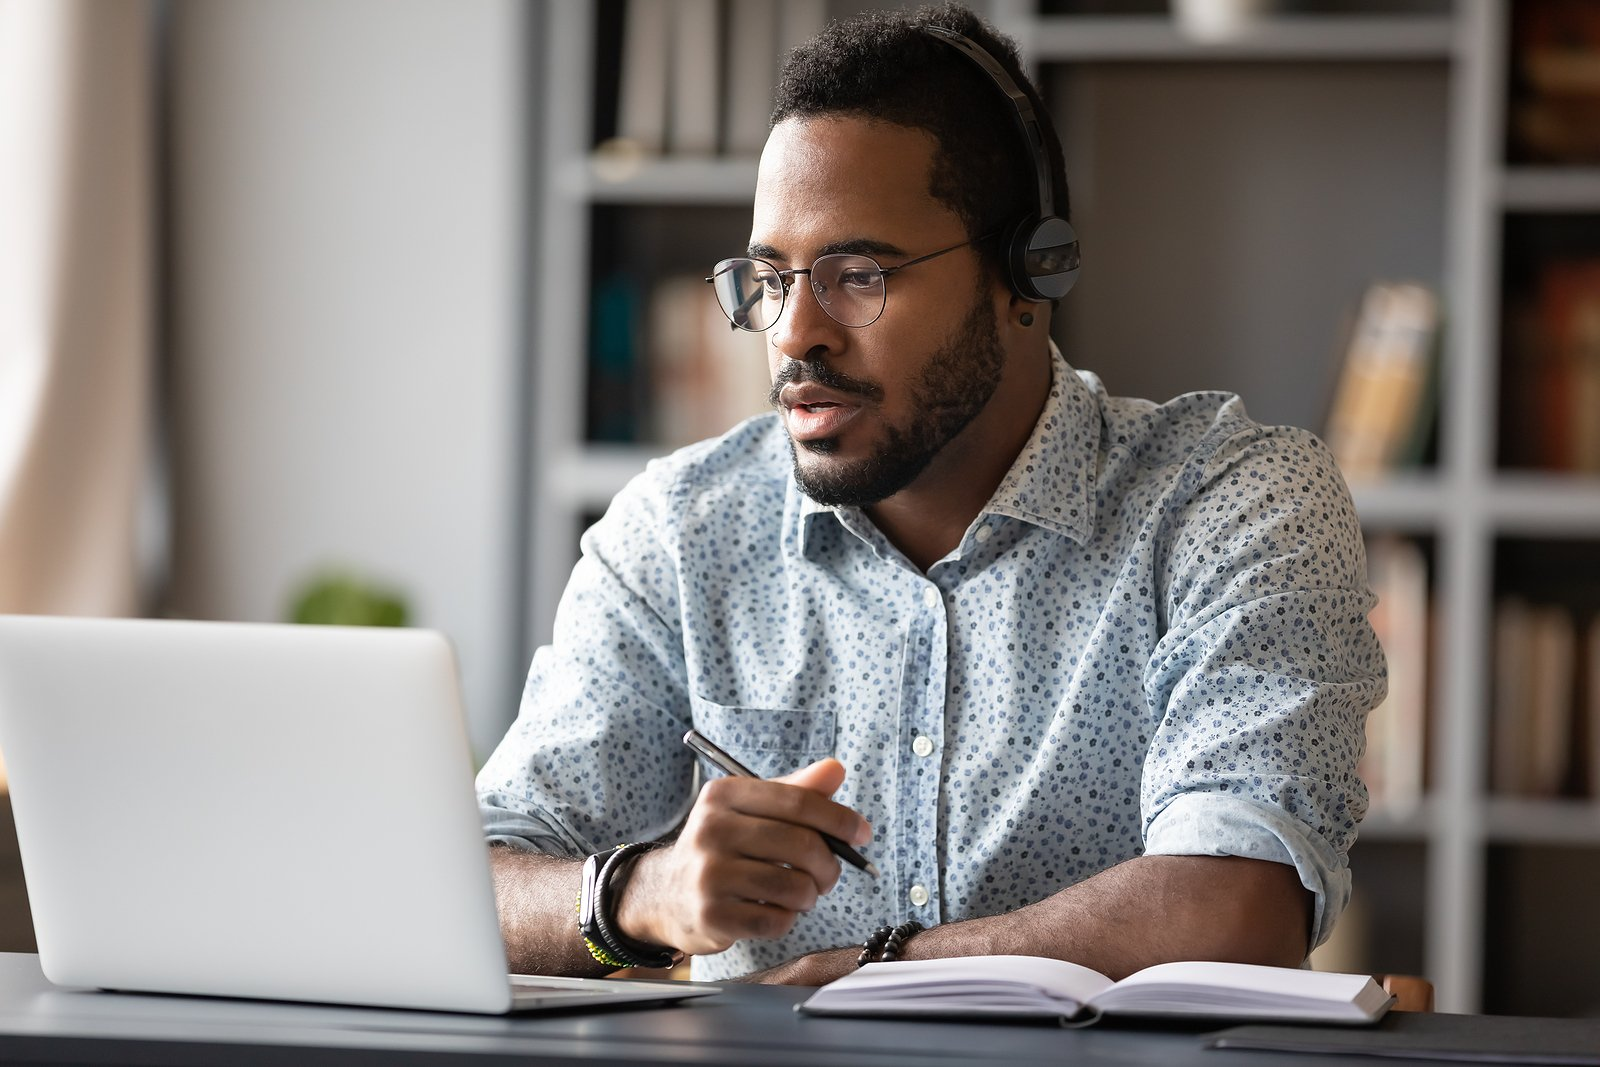 Man learning by watching online course